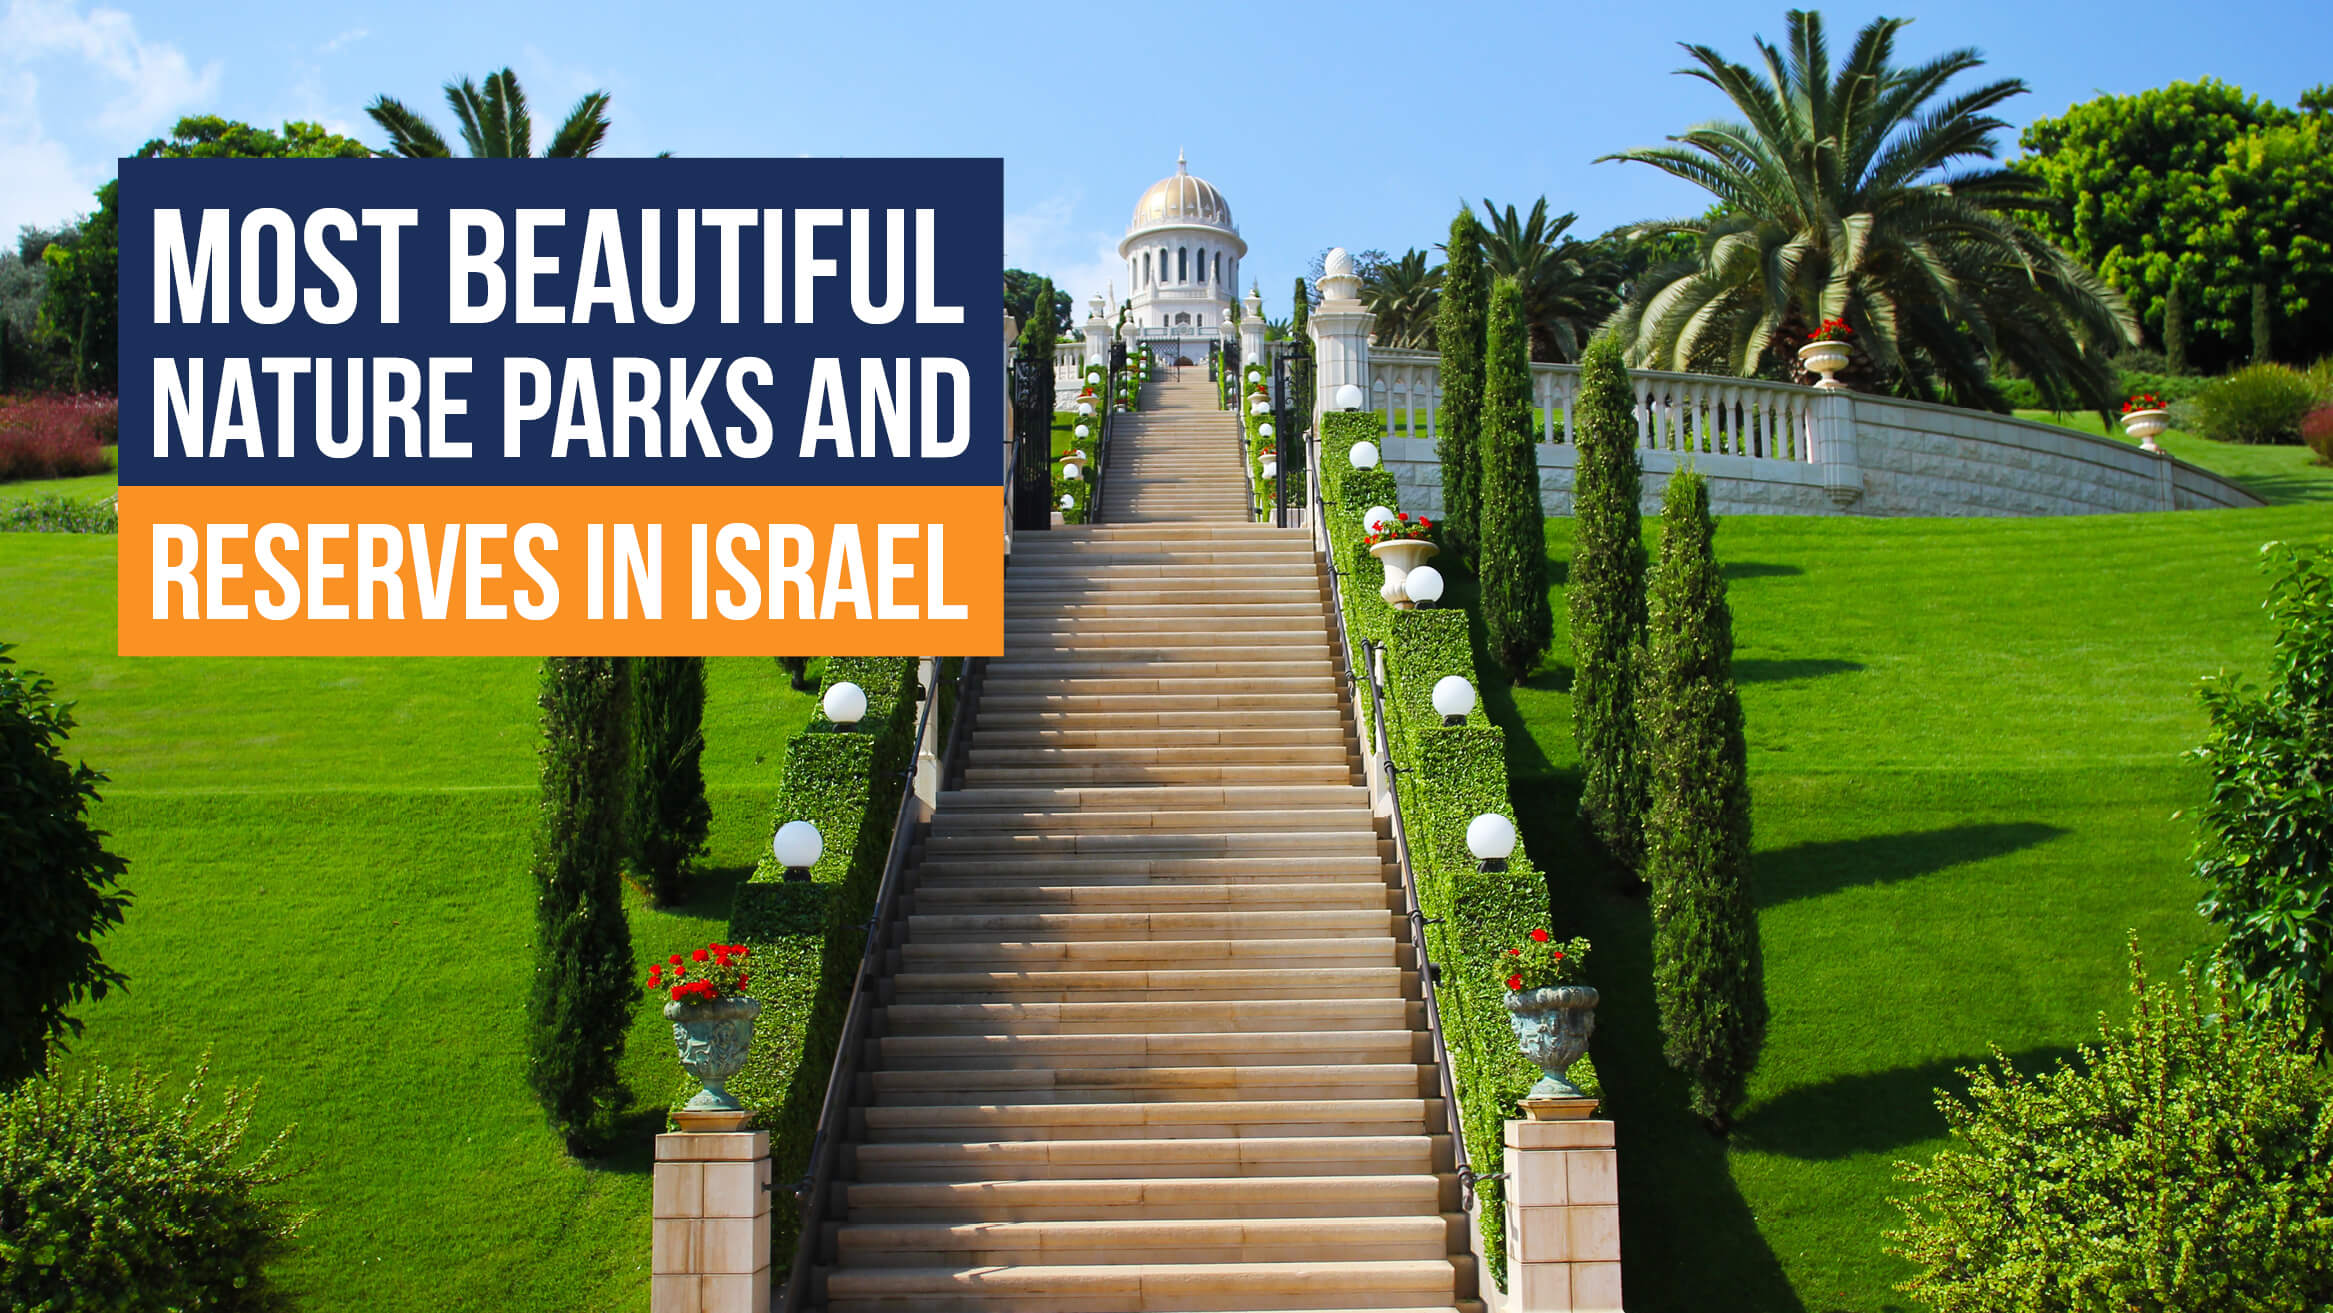 Most Beautiful Nature Parks and Reserves in Israel header